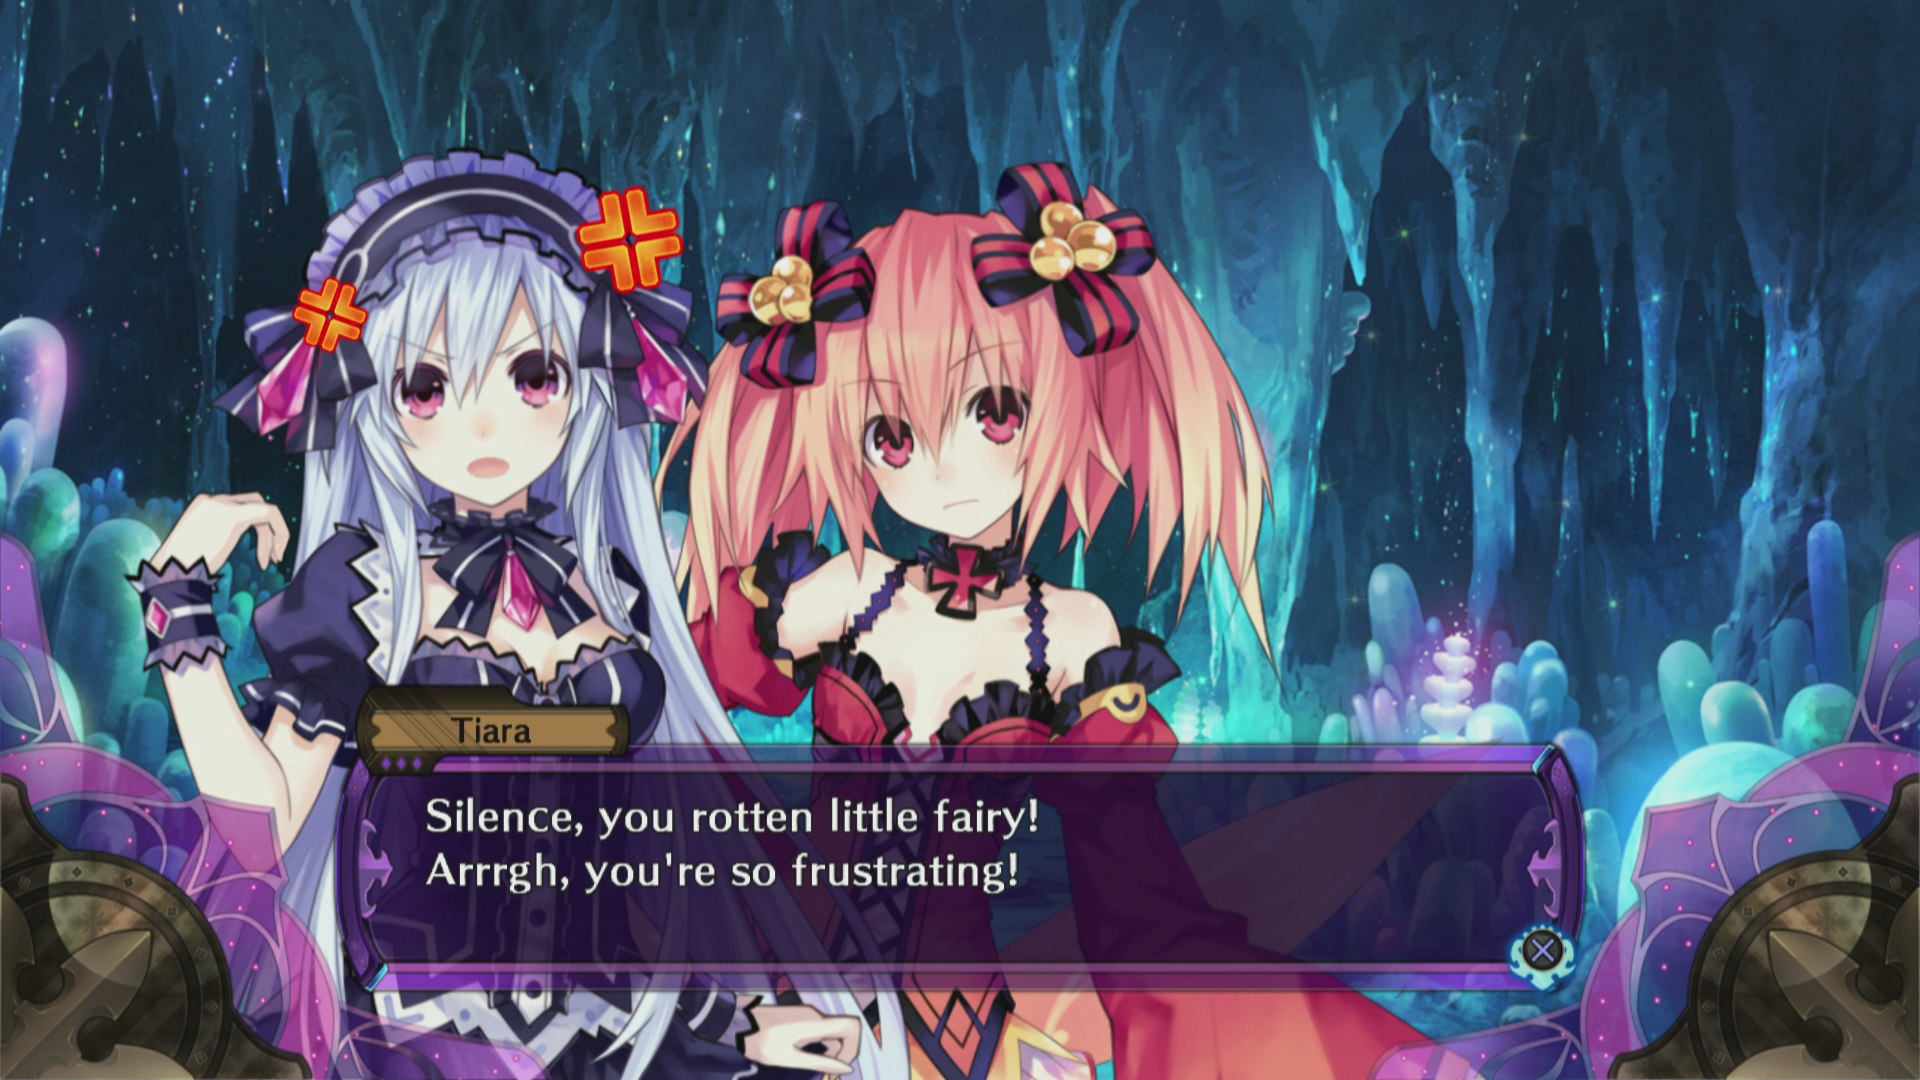 Fairy Fencer F and Hyperdimension Neptunia to Be Launched in English_Haruhichan.com-on Steam-Fairy-Fencer-F